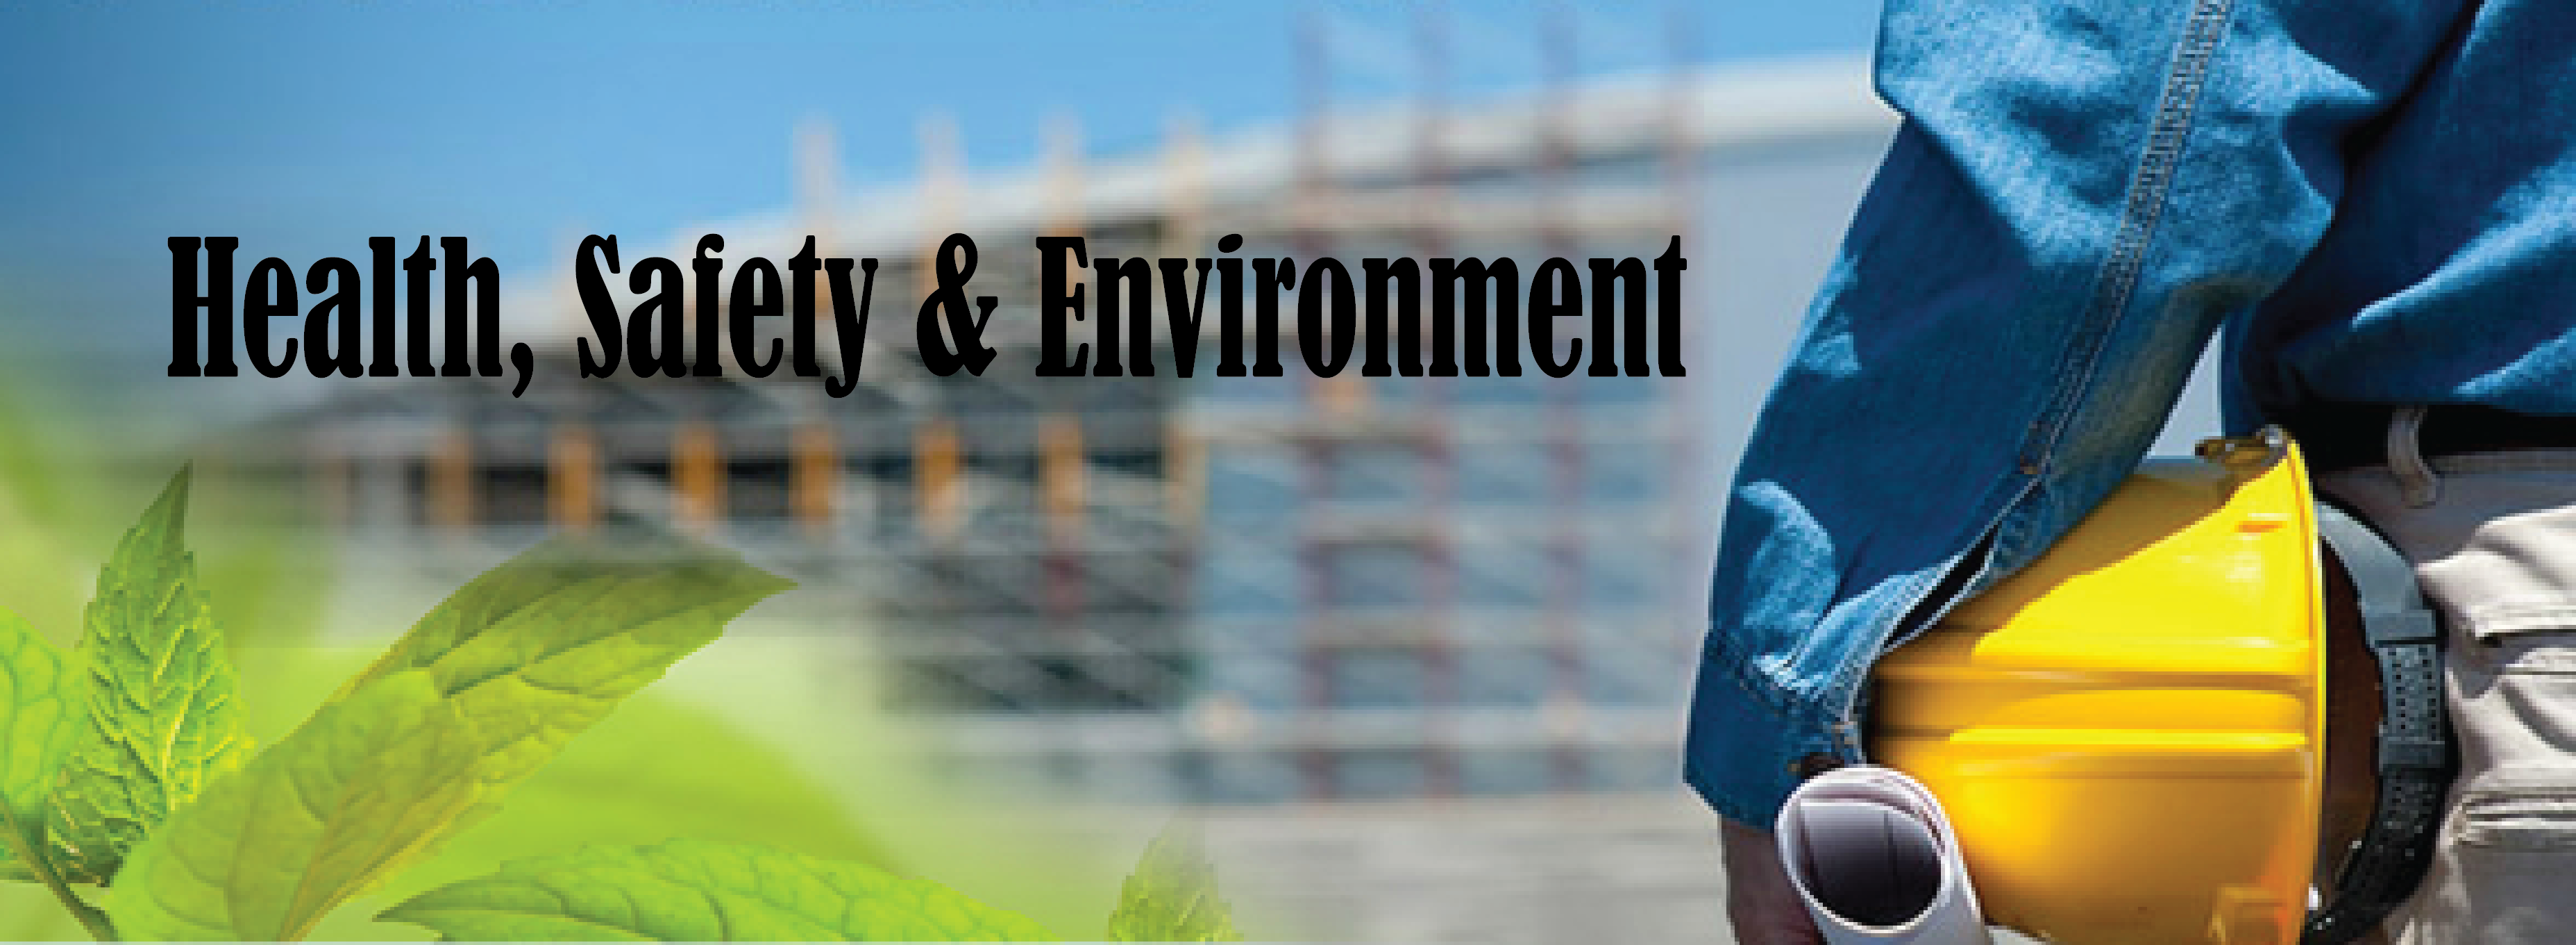 environmental health safety Prospective students searching for how to become an environmental health and safety specialist found the following information relevant and useful.